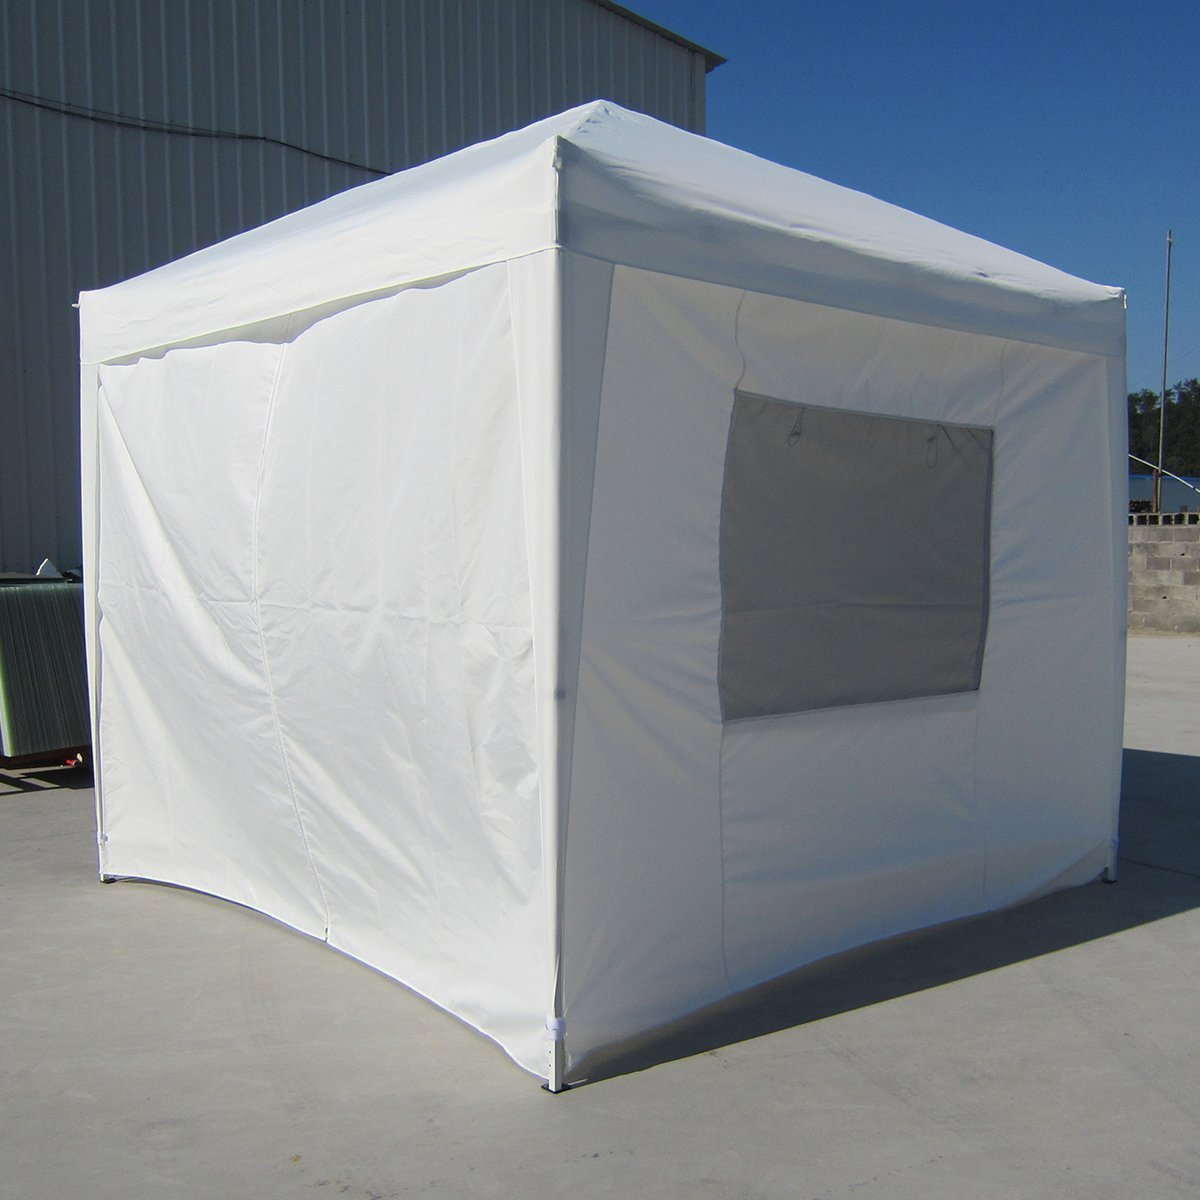 Big Sale!Quictent Privacy 8'x8' EZ Pop Up Party Tent Canopy